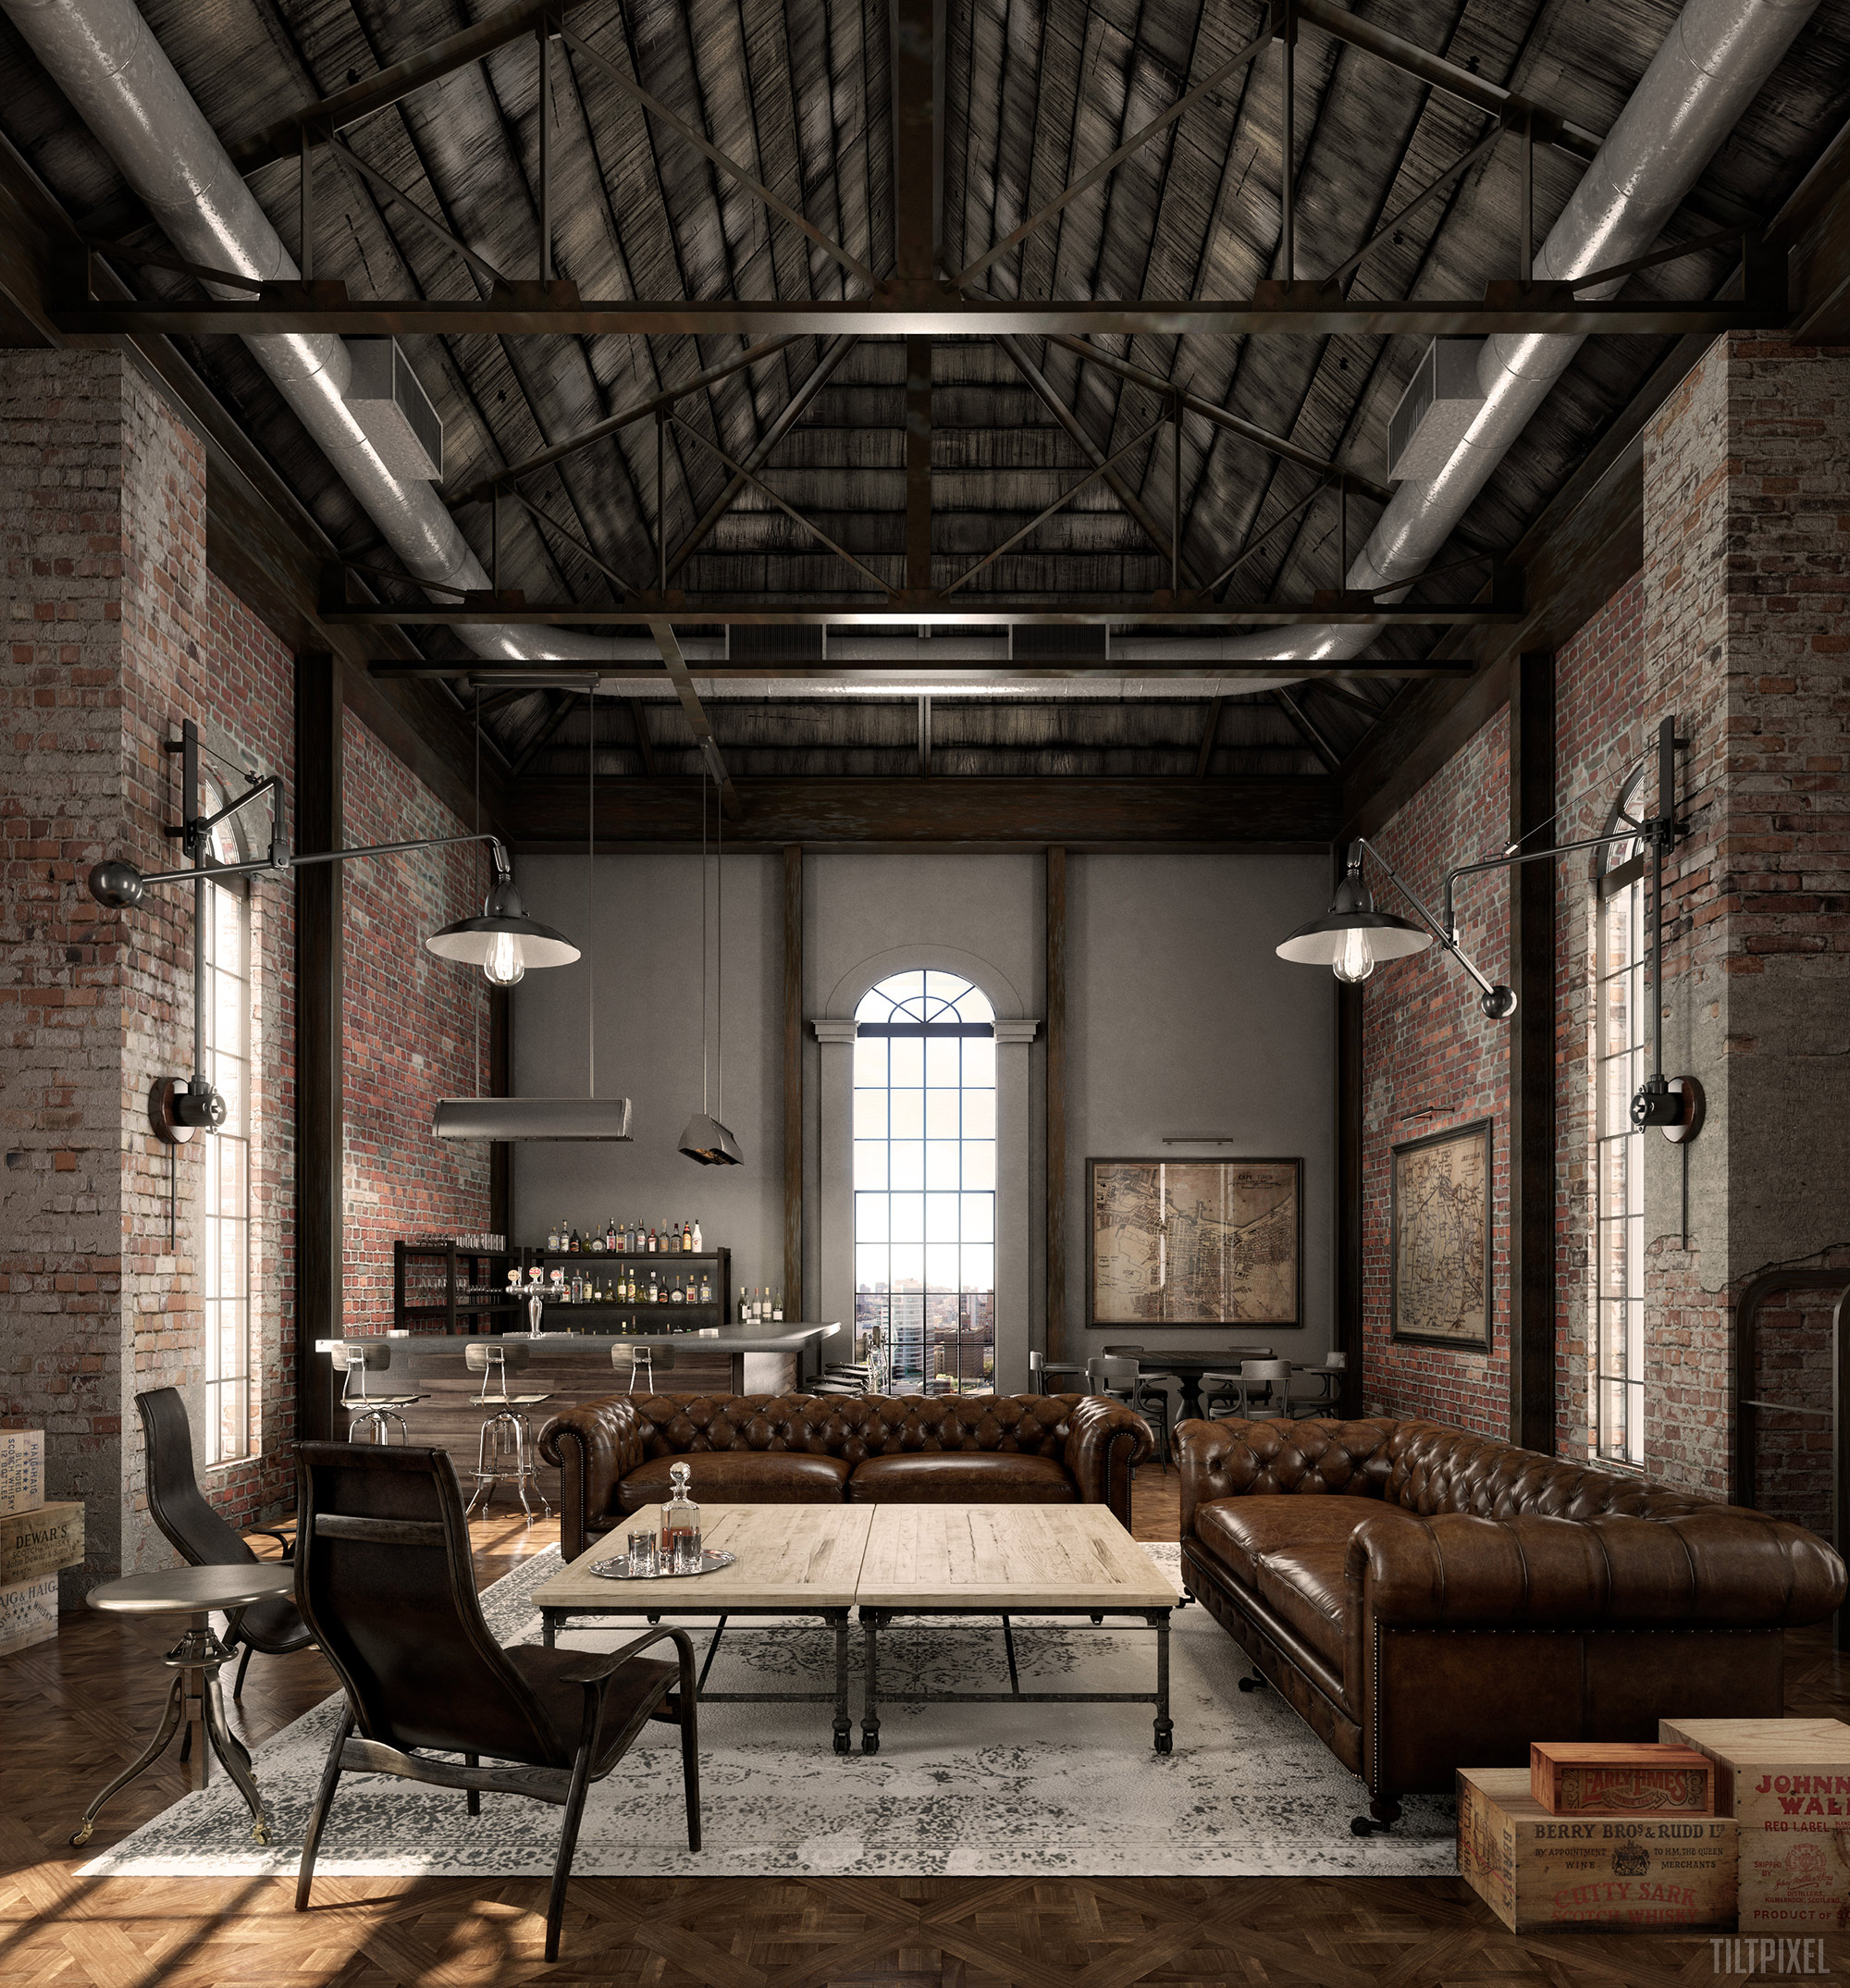 If You Have Been Dreaming About New York Industrial Lofts, We Got You 3 New York Industrial Lofts If You Have Been Dreaming About New York Industrial Lofts, We Got You! If You Have Been Dreaming About New York Industrial Lofts We Got You 3